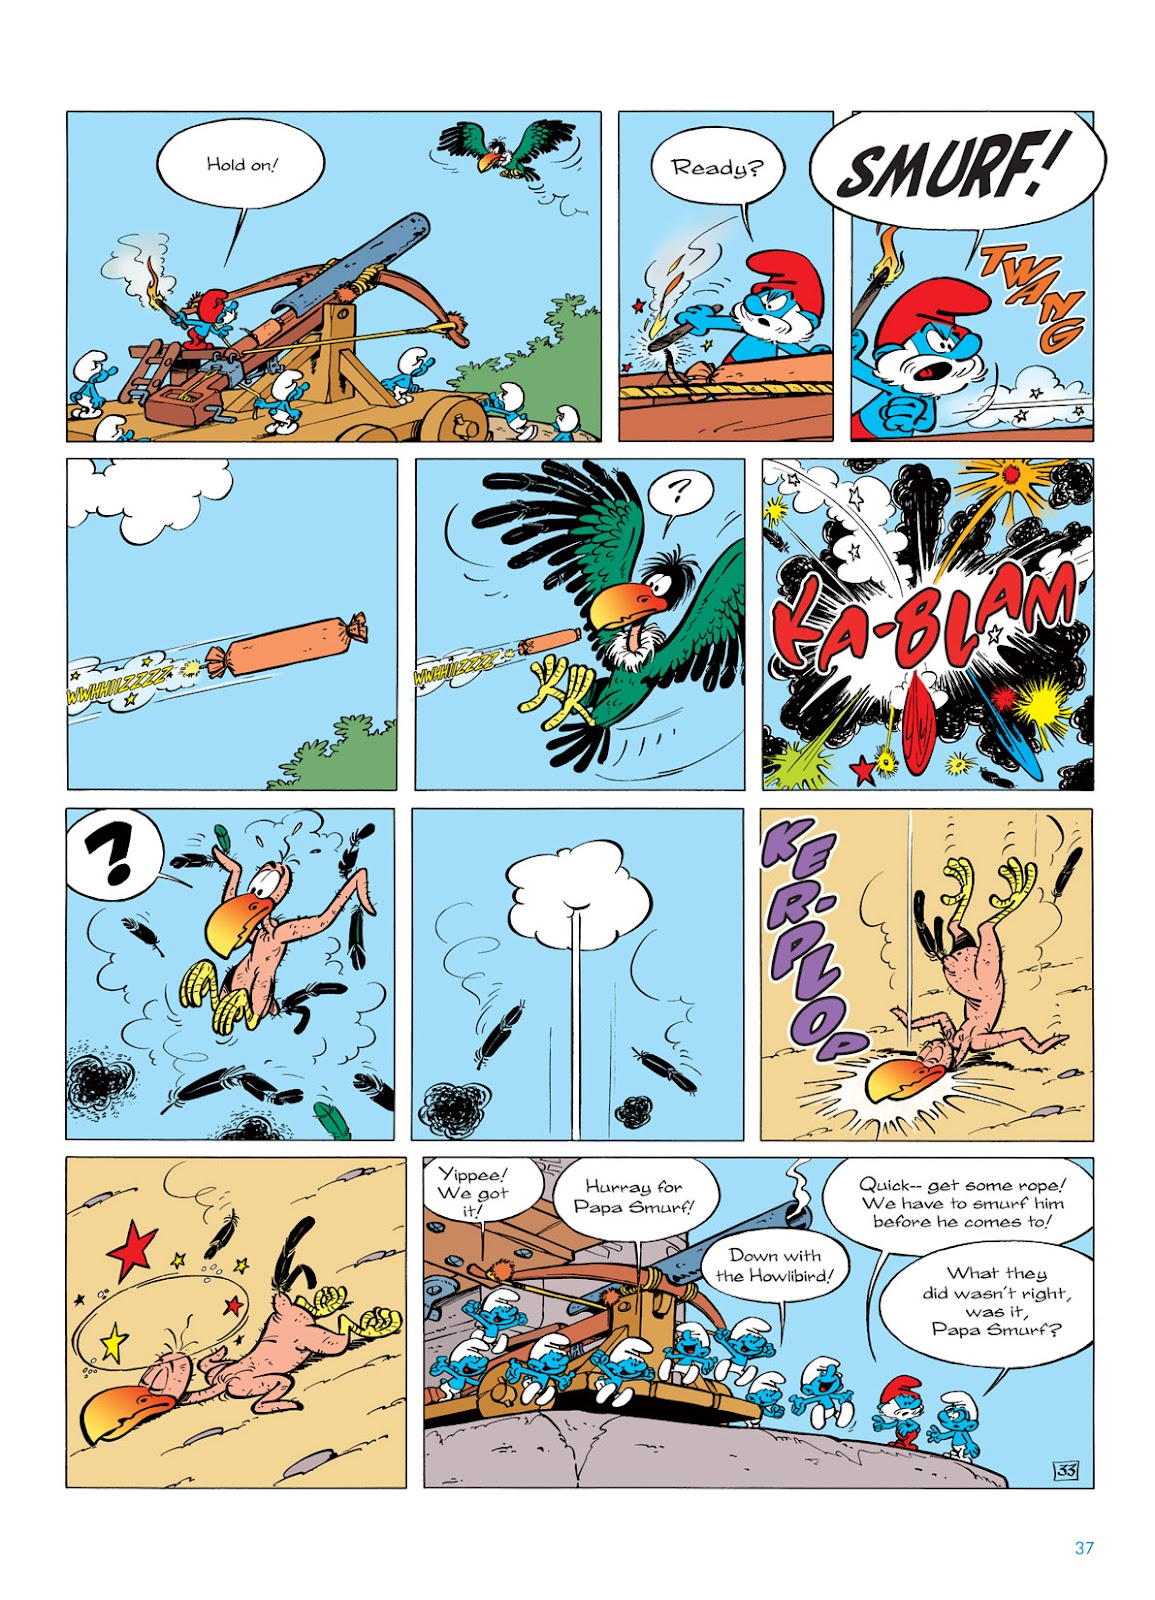 Read online The Smurfs comic -  Issue #6 - 37